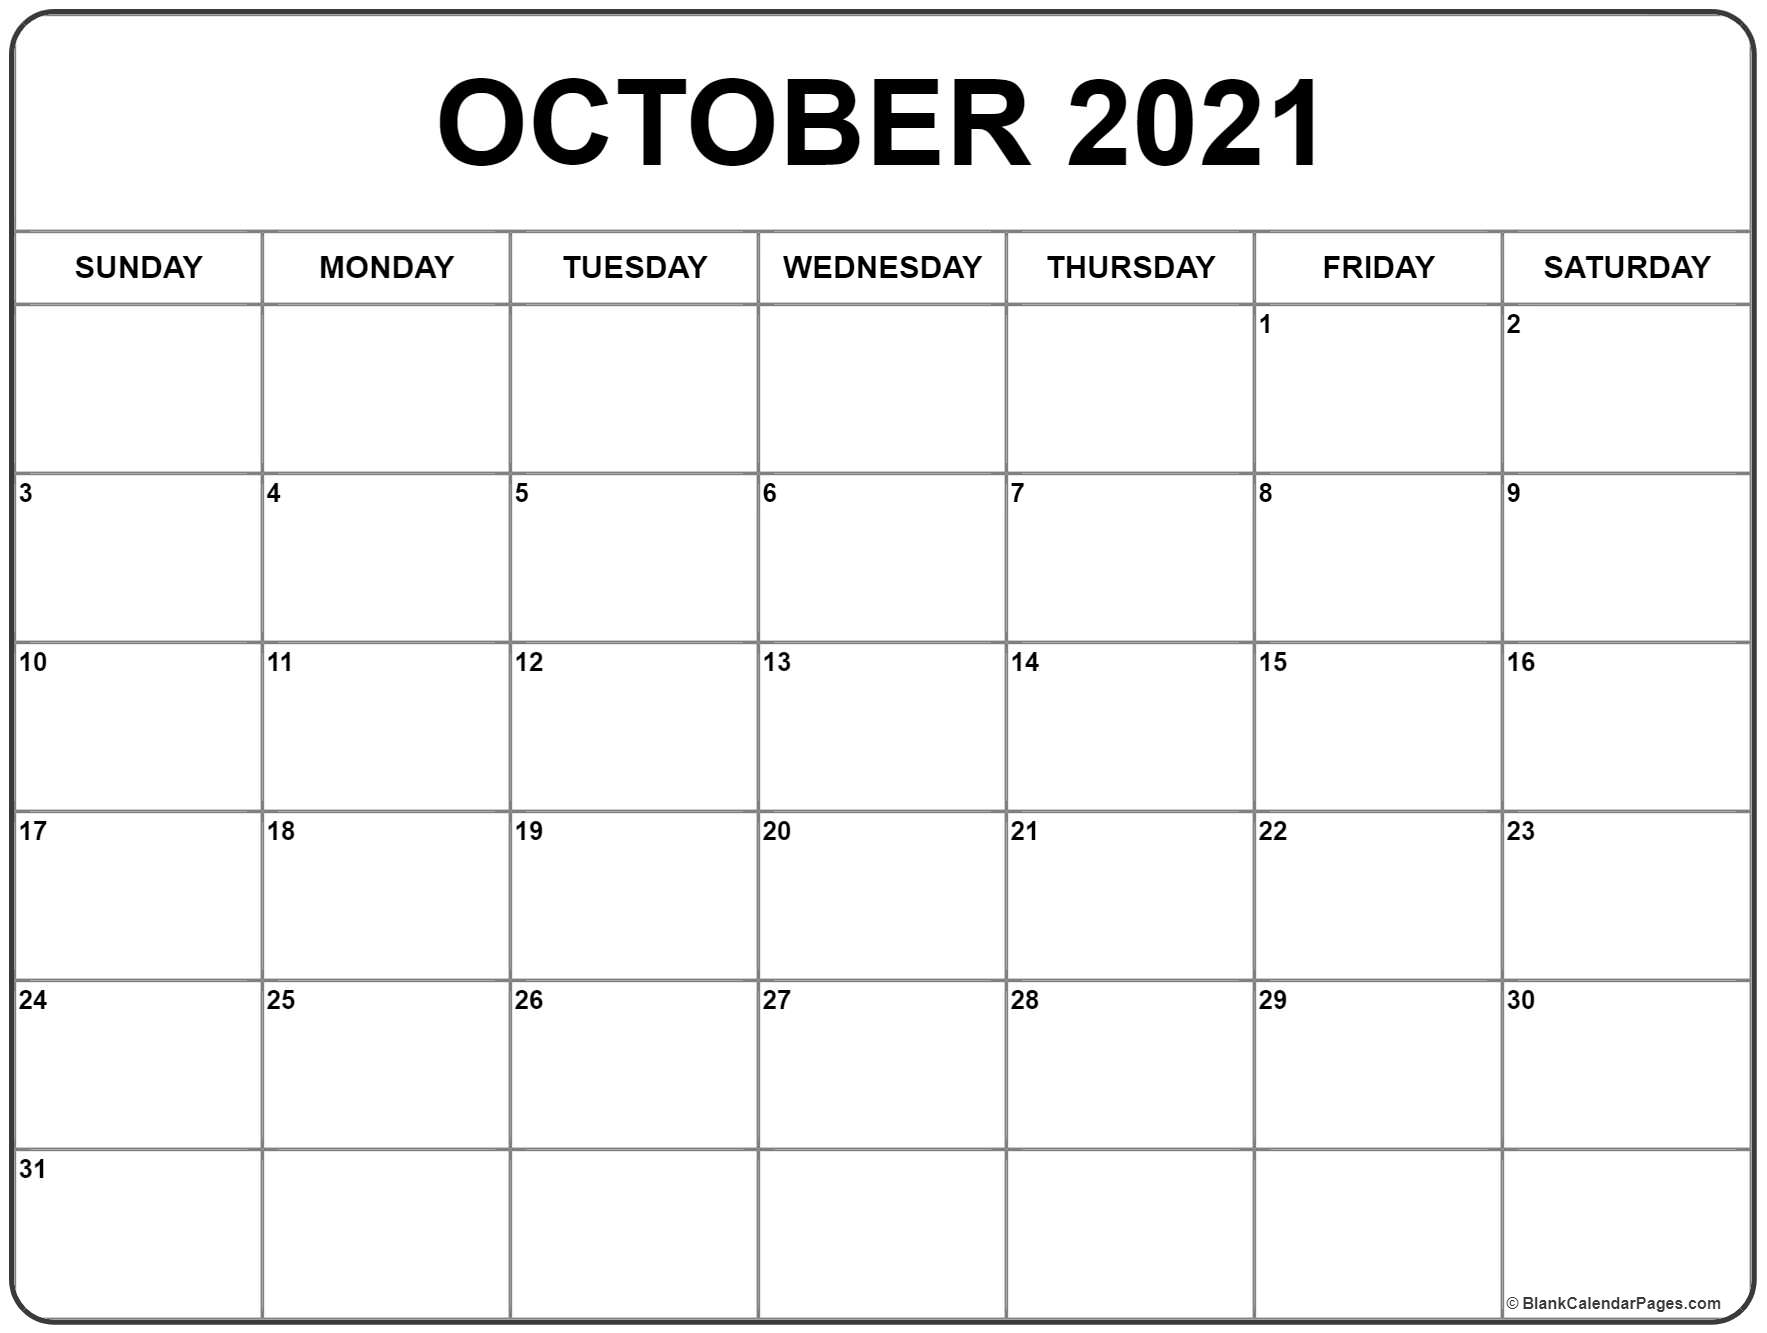 October 2019 calendar * 51+ templates of printable calendars